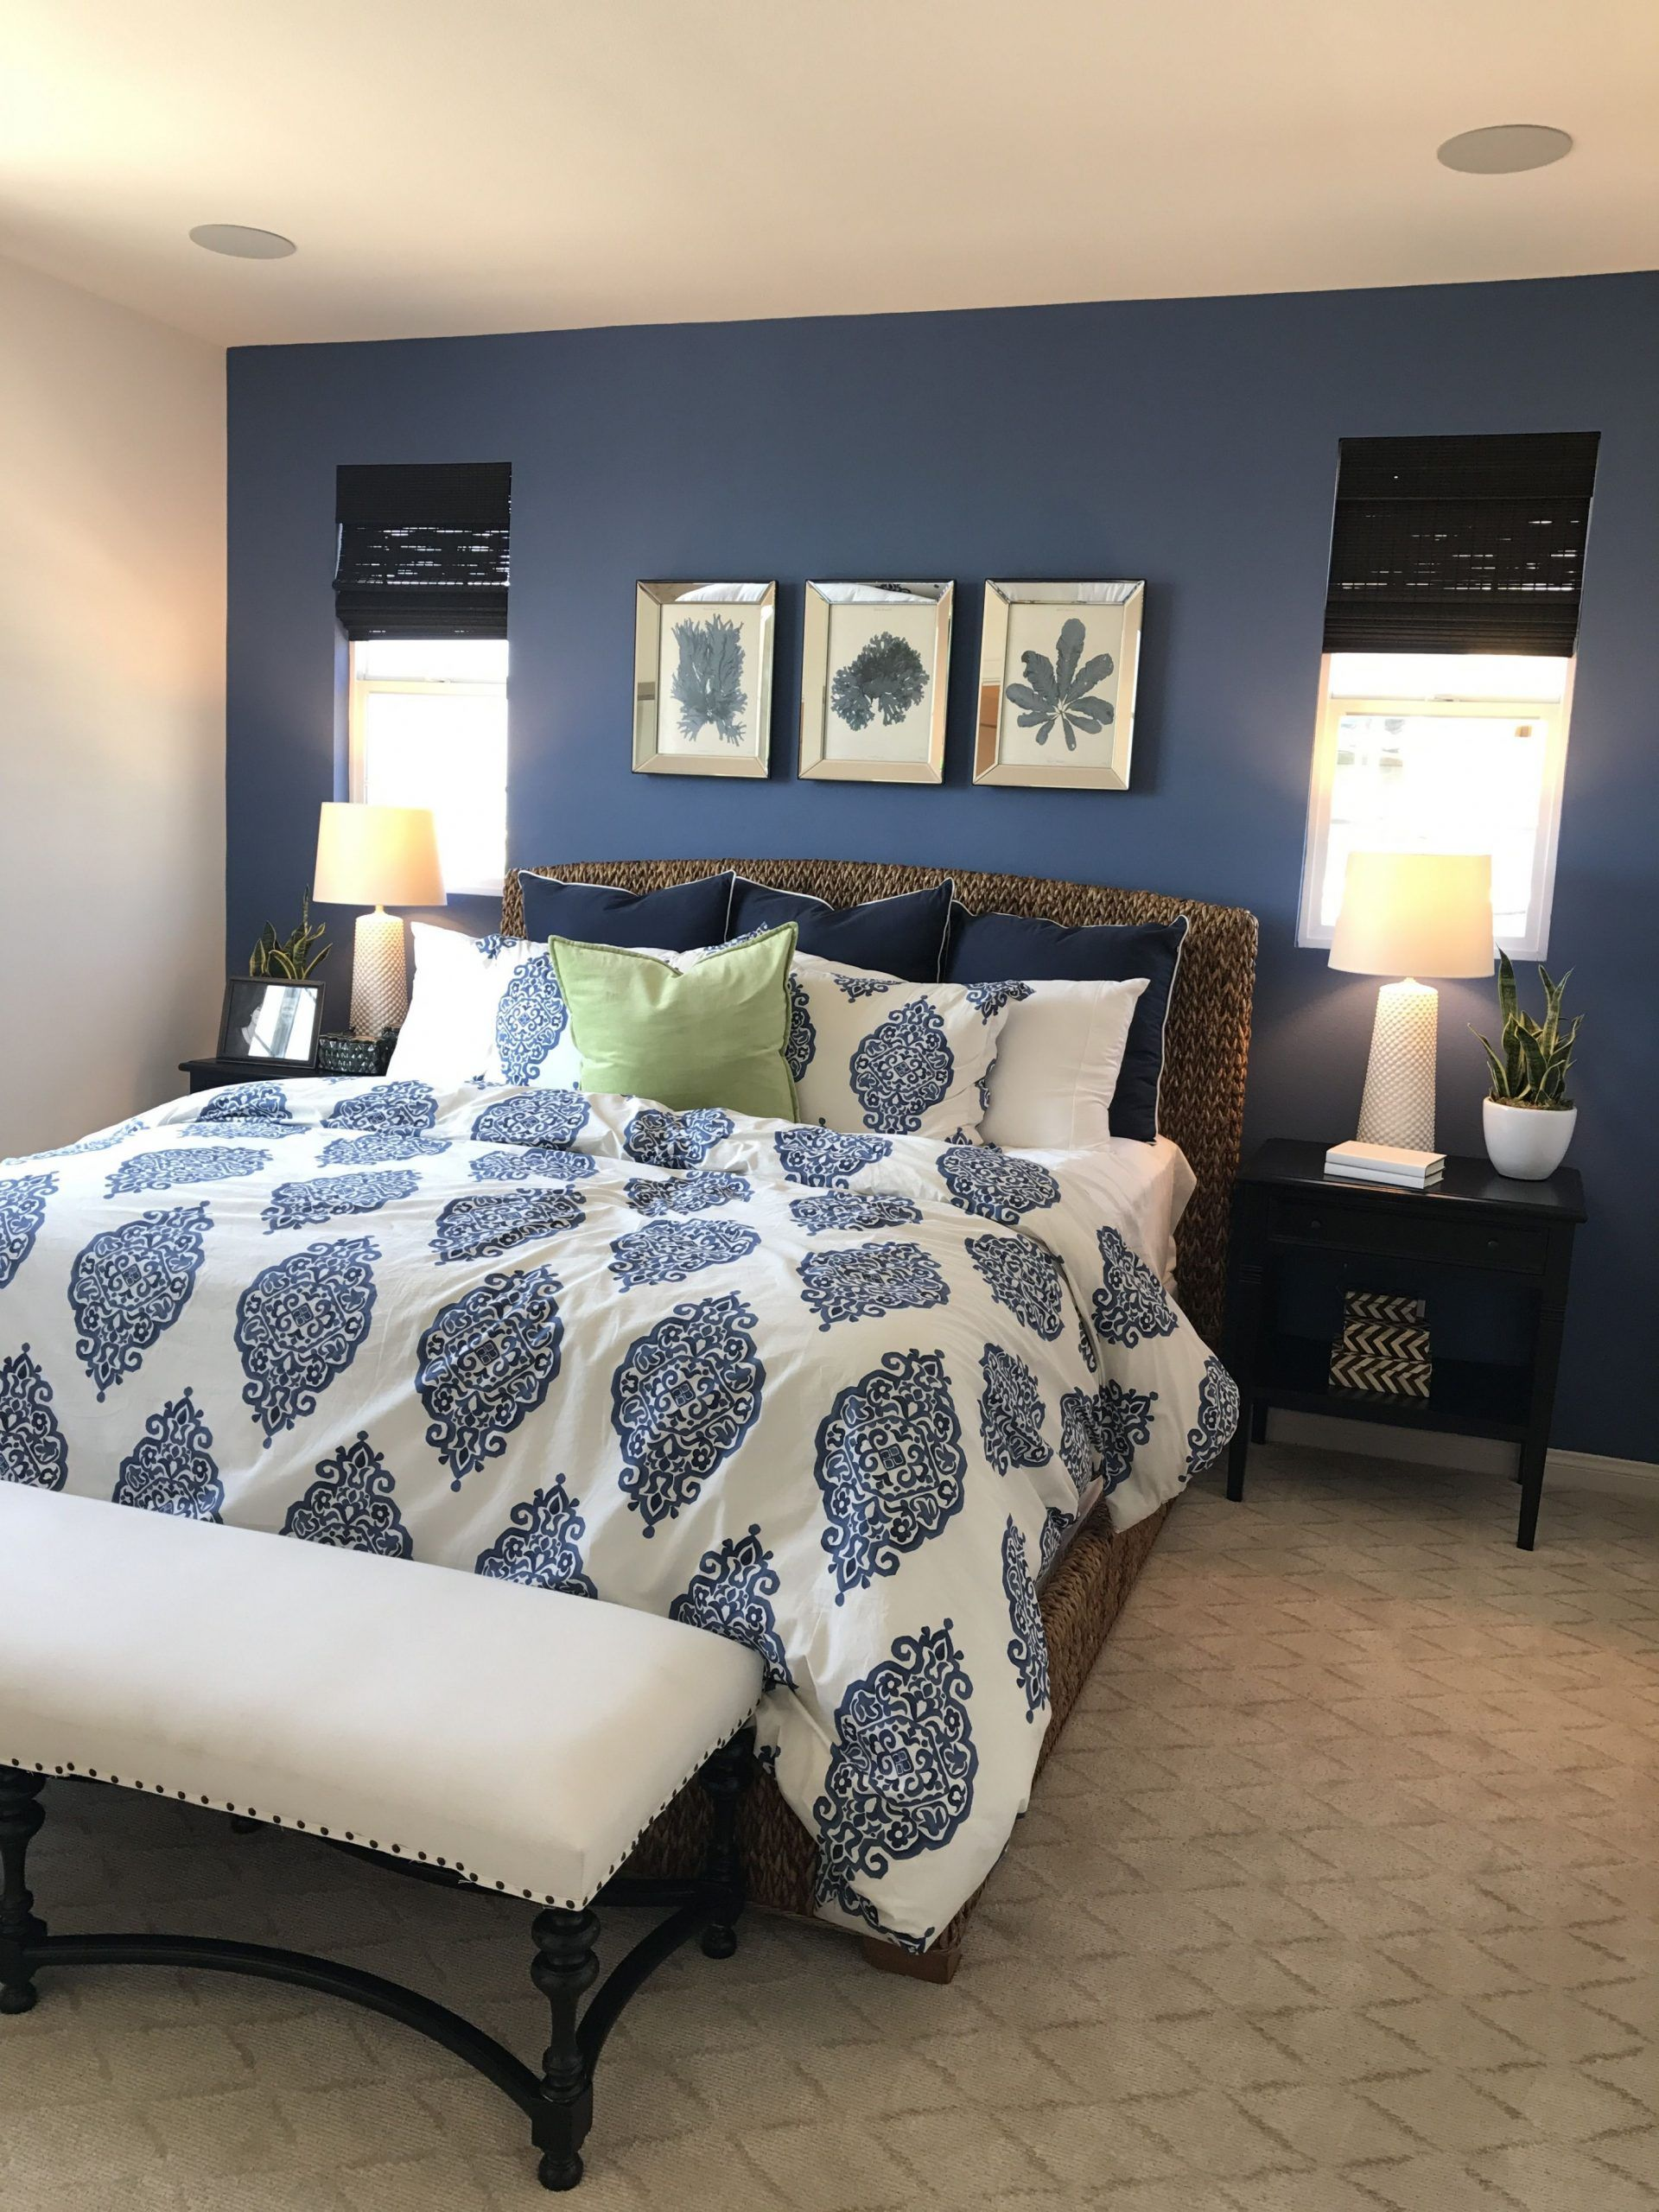 3 Room Hdb Accent Wall: Blue Master Bedroom, Blue Accent